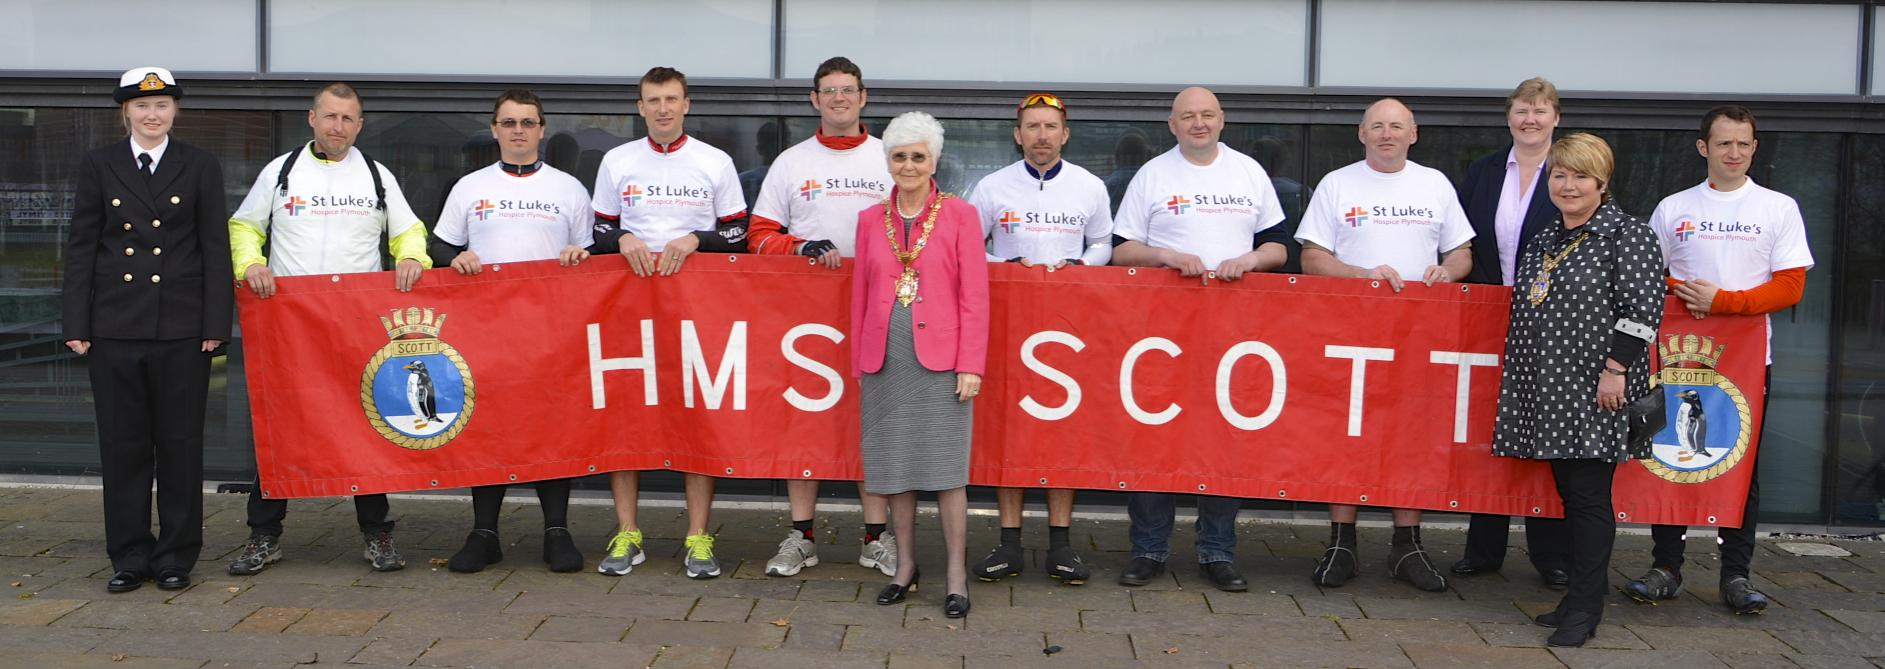 HMS SCOTT CYCLISTS COMPLETE CHARITY RIDE